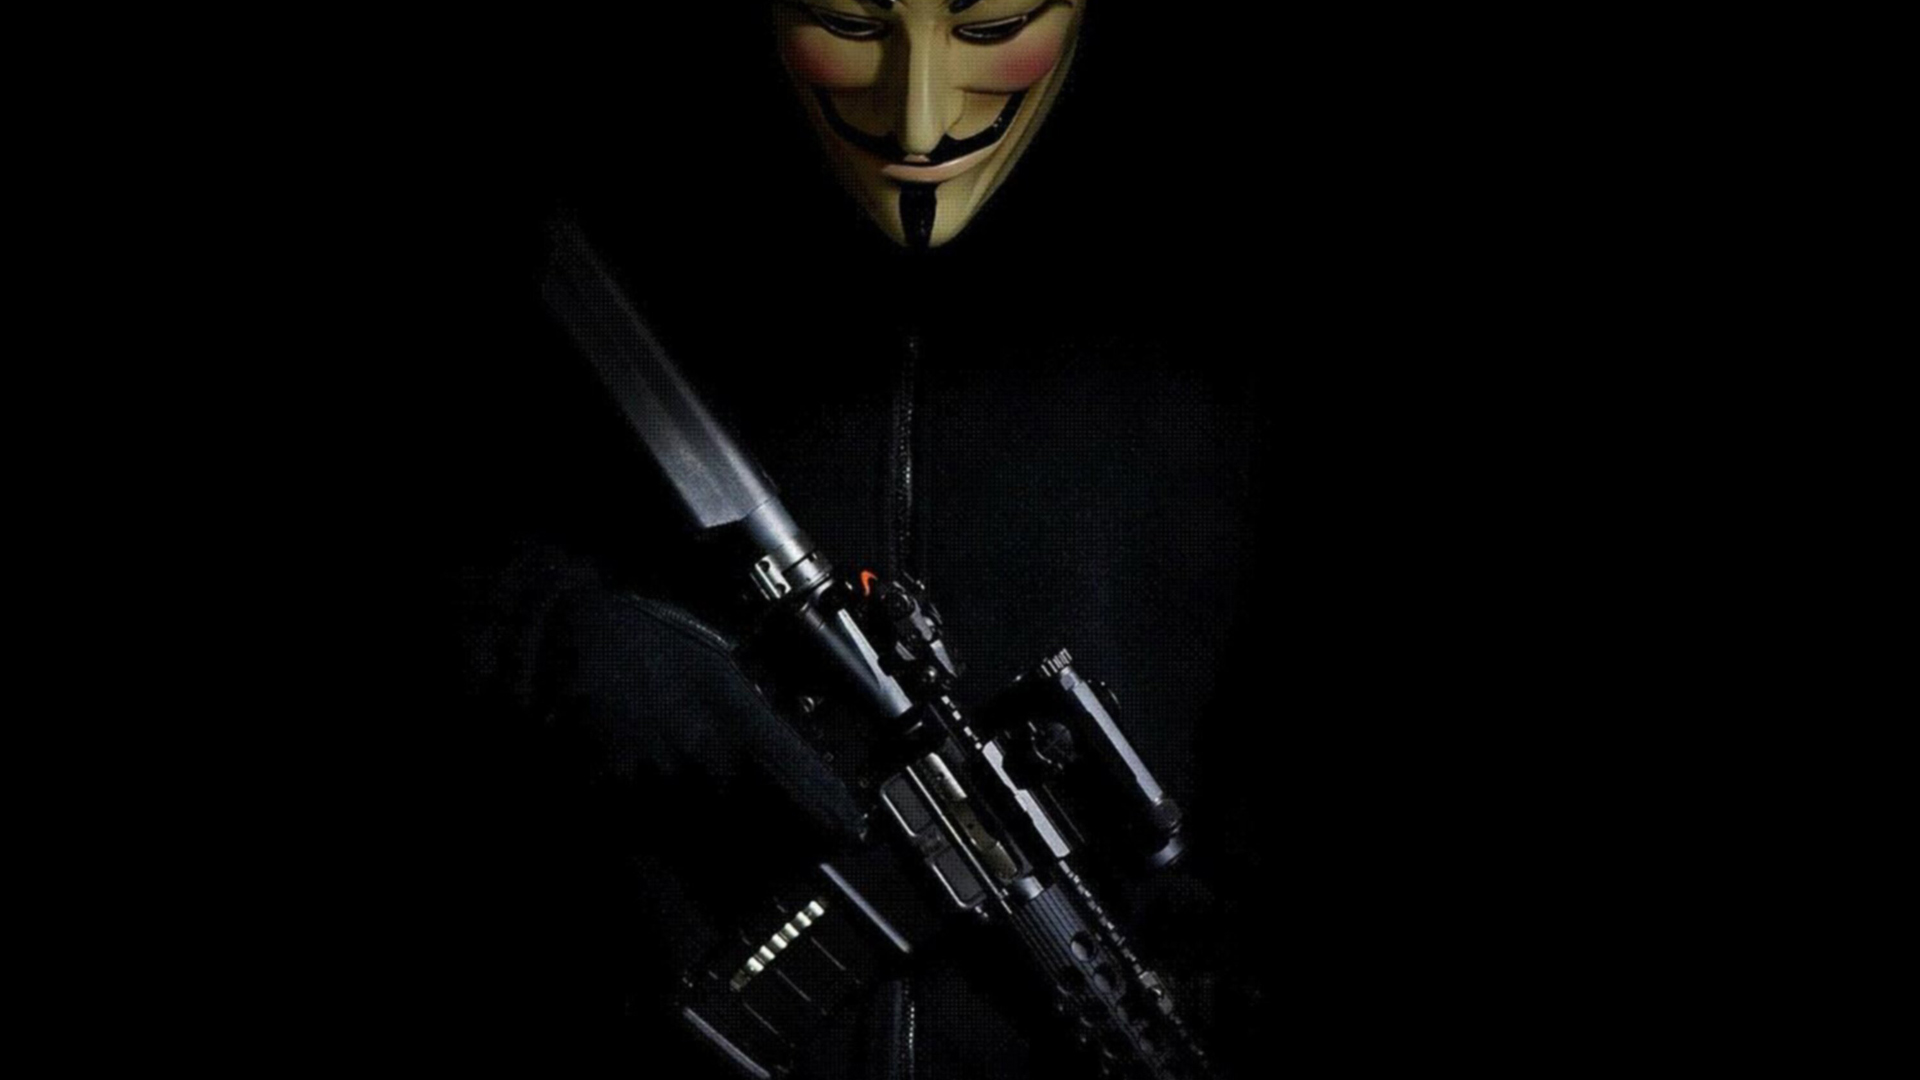 Best Wallpaper High Quality Weapon - Anonymous_Mask_Picture_with_Weapon_for_Wallpaper  Best Photo Reference_503377.jpg